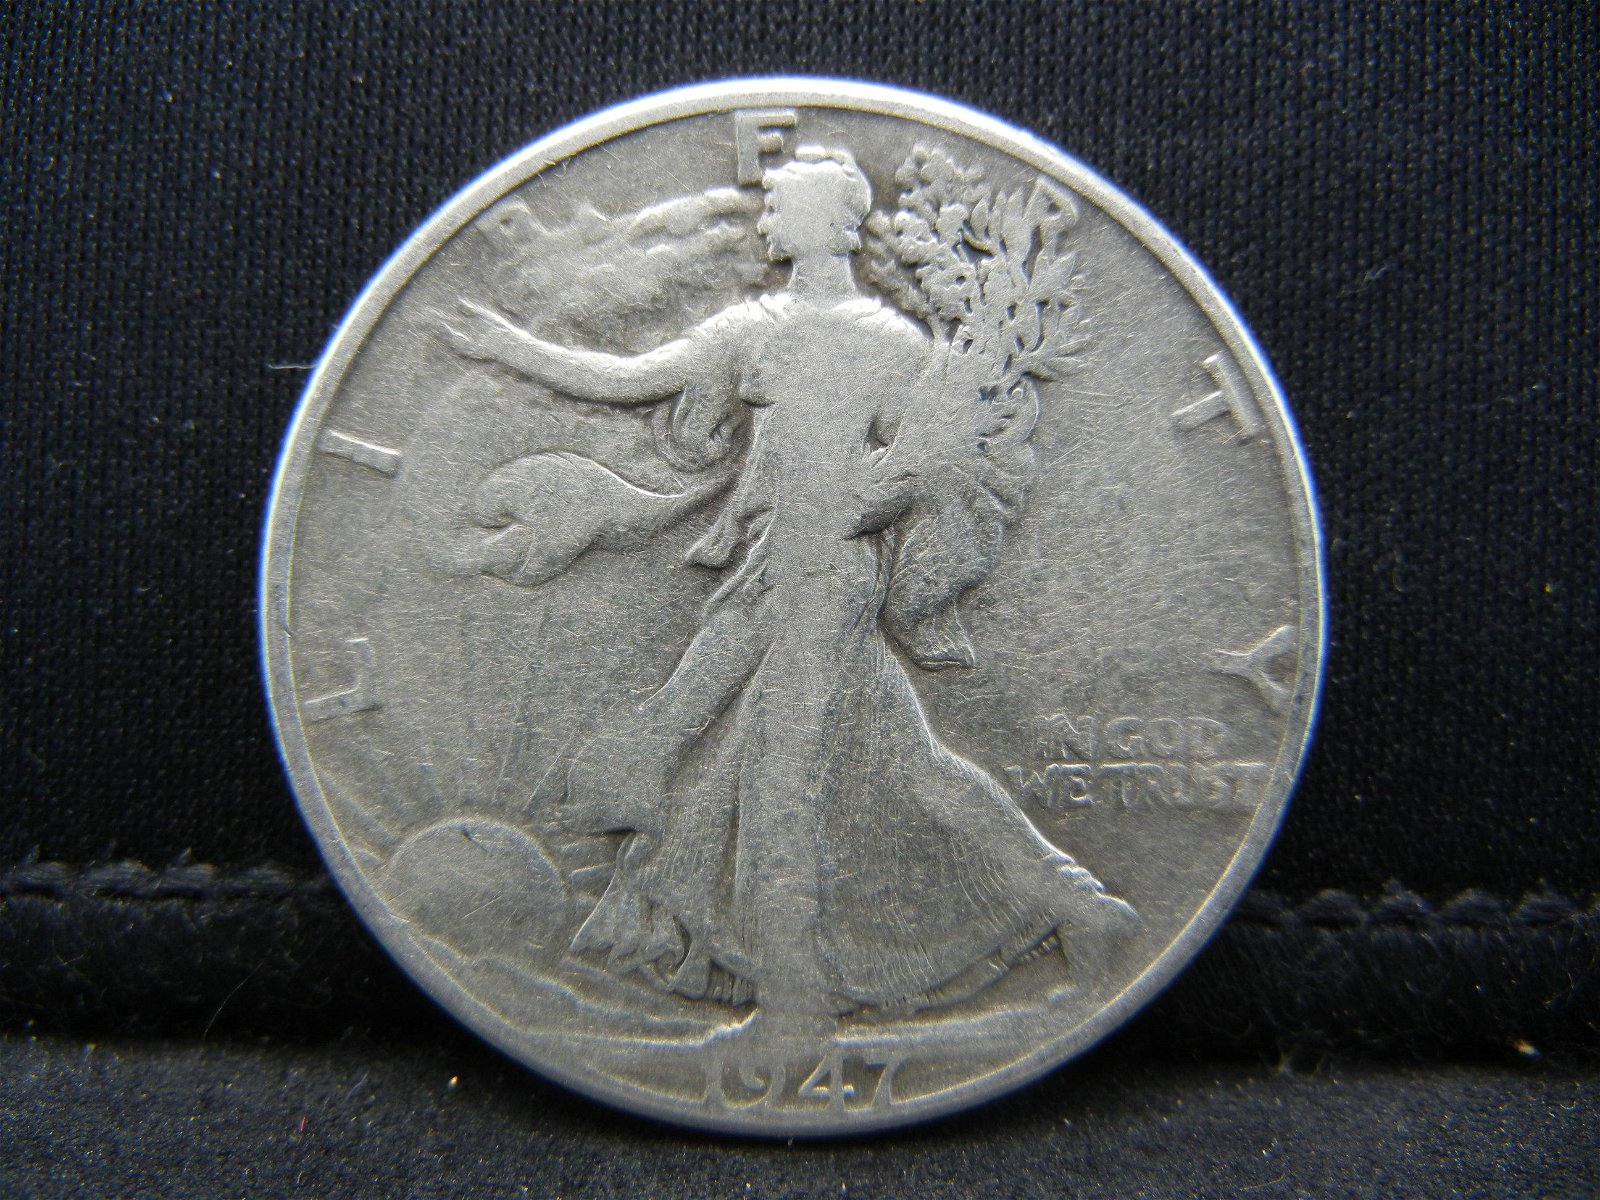 1947-D SILVER (90%) LIBERTY HALF, LAST YEAR, ONLY 3.9